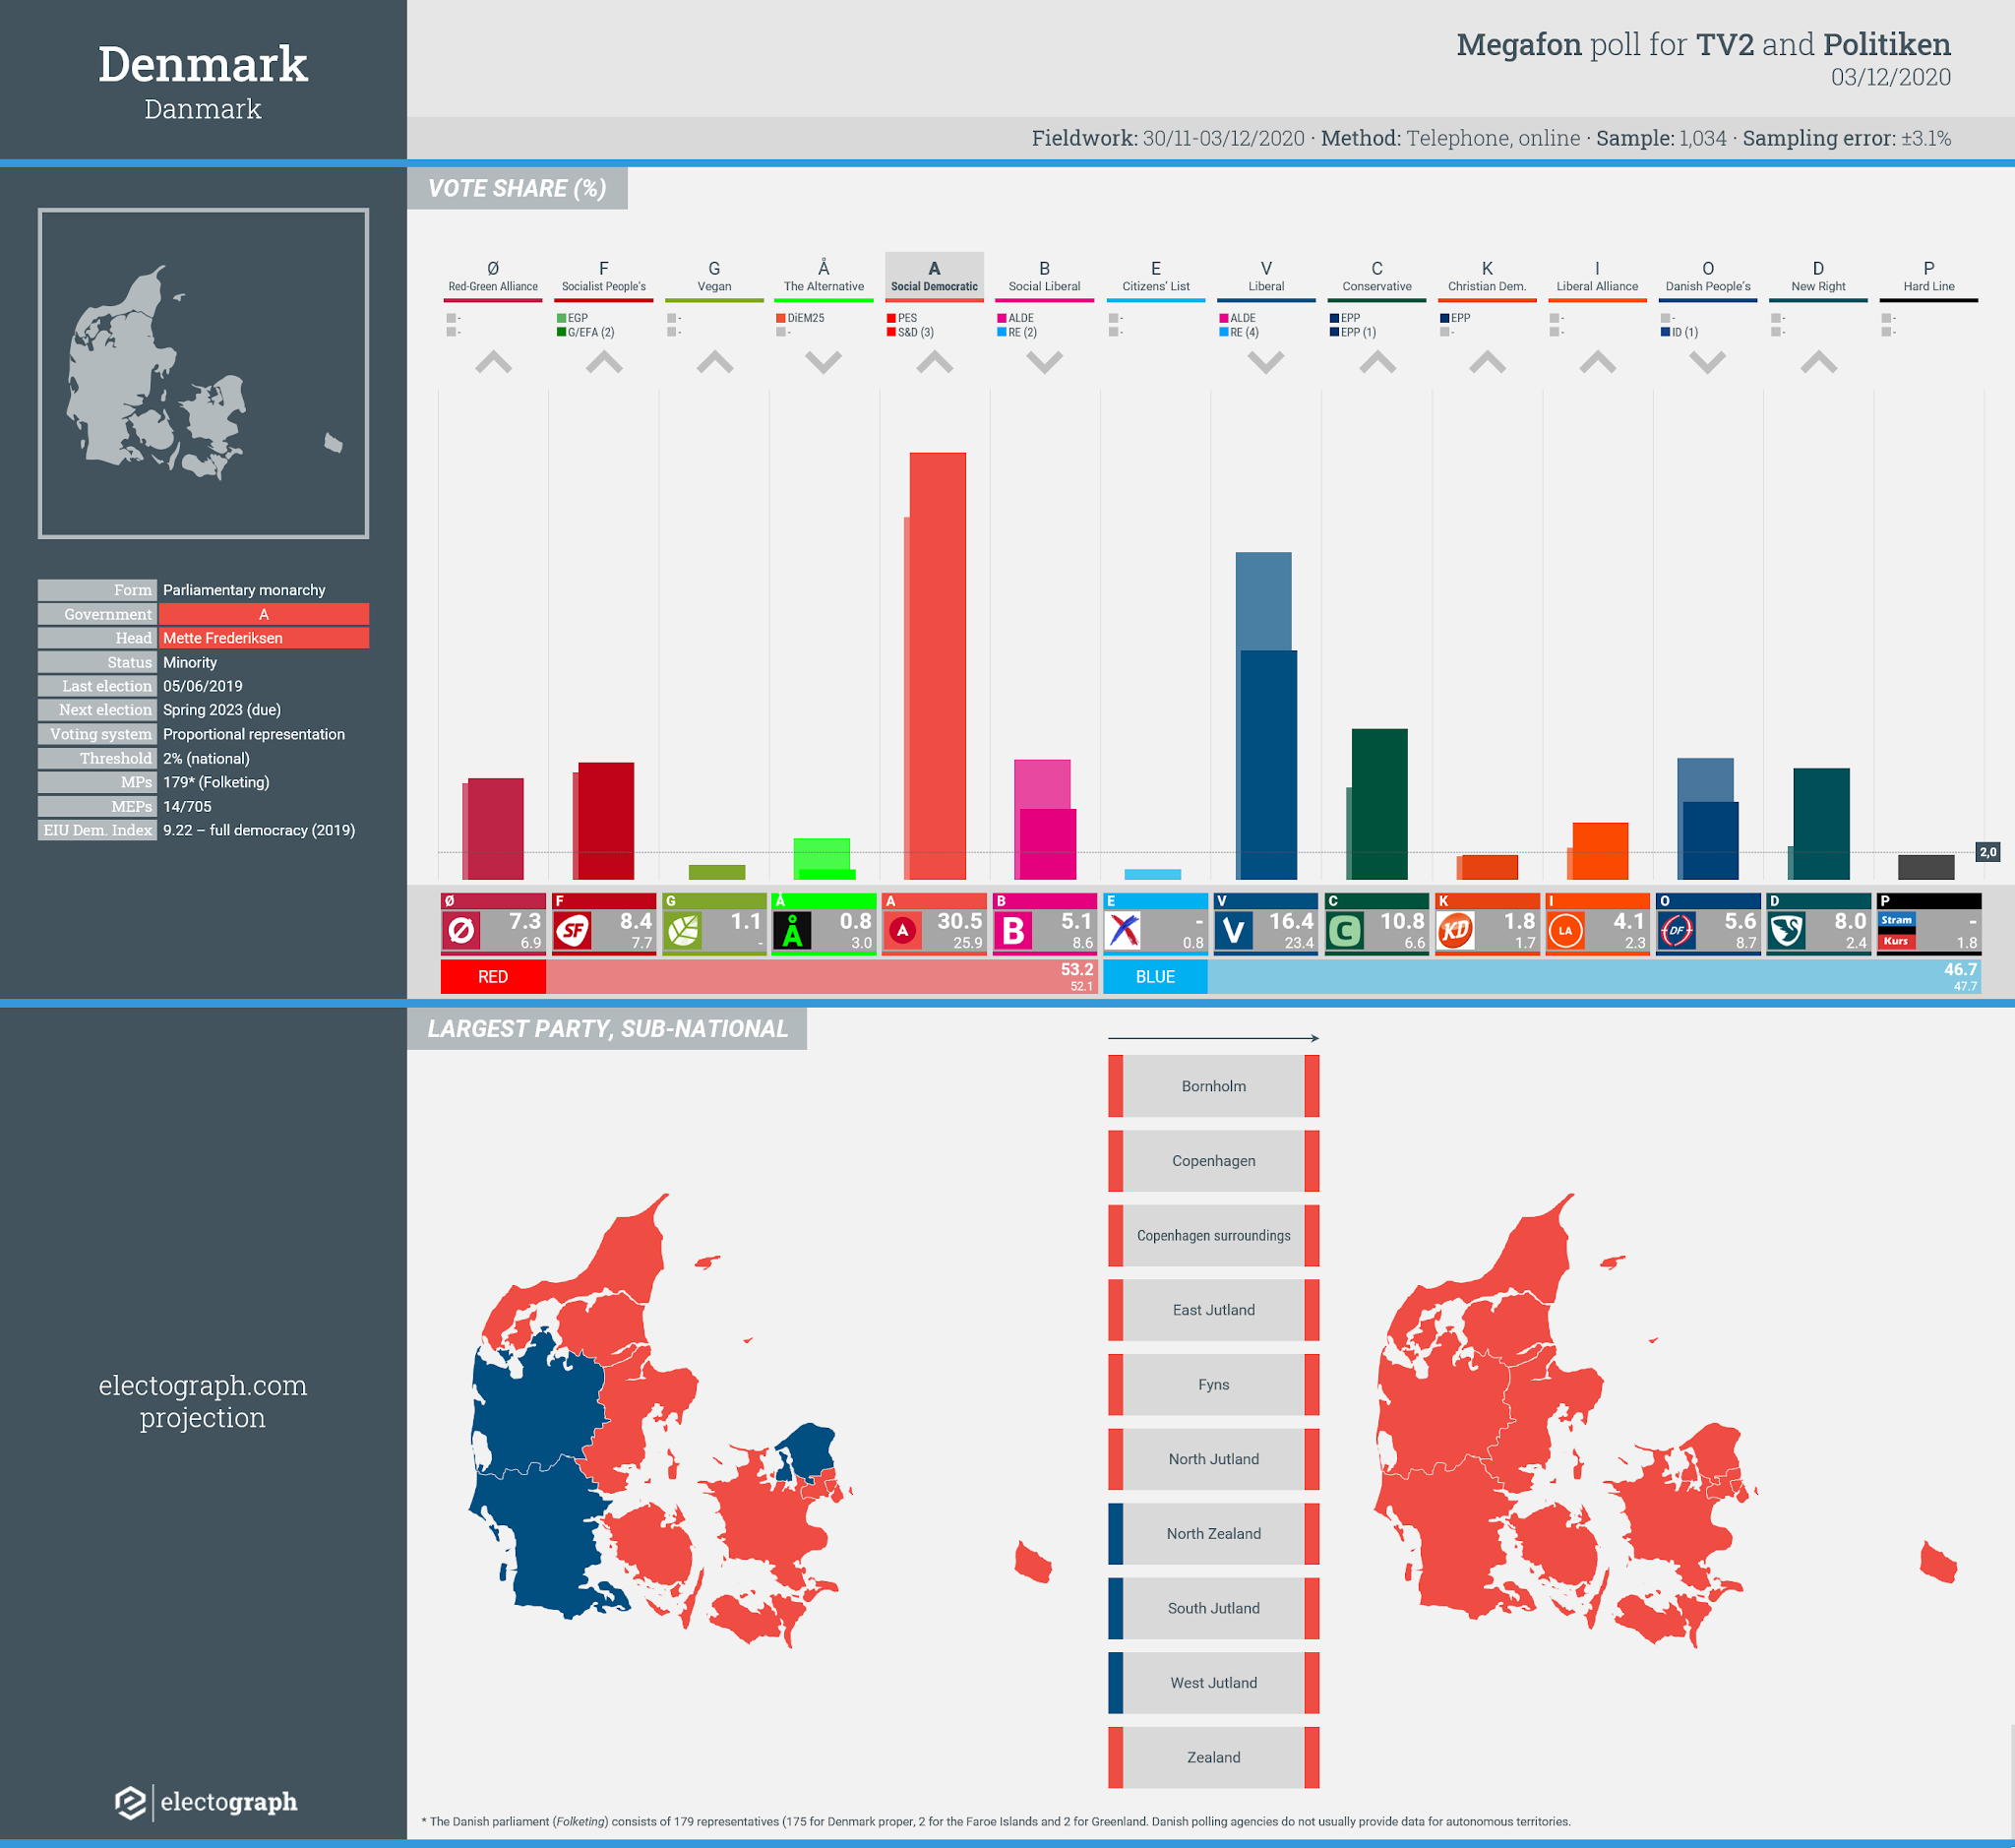 DENMARK: Megafon poll chart for TV2 and Politiken, 3 December 2020